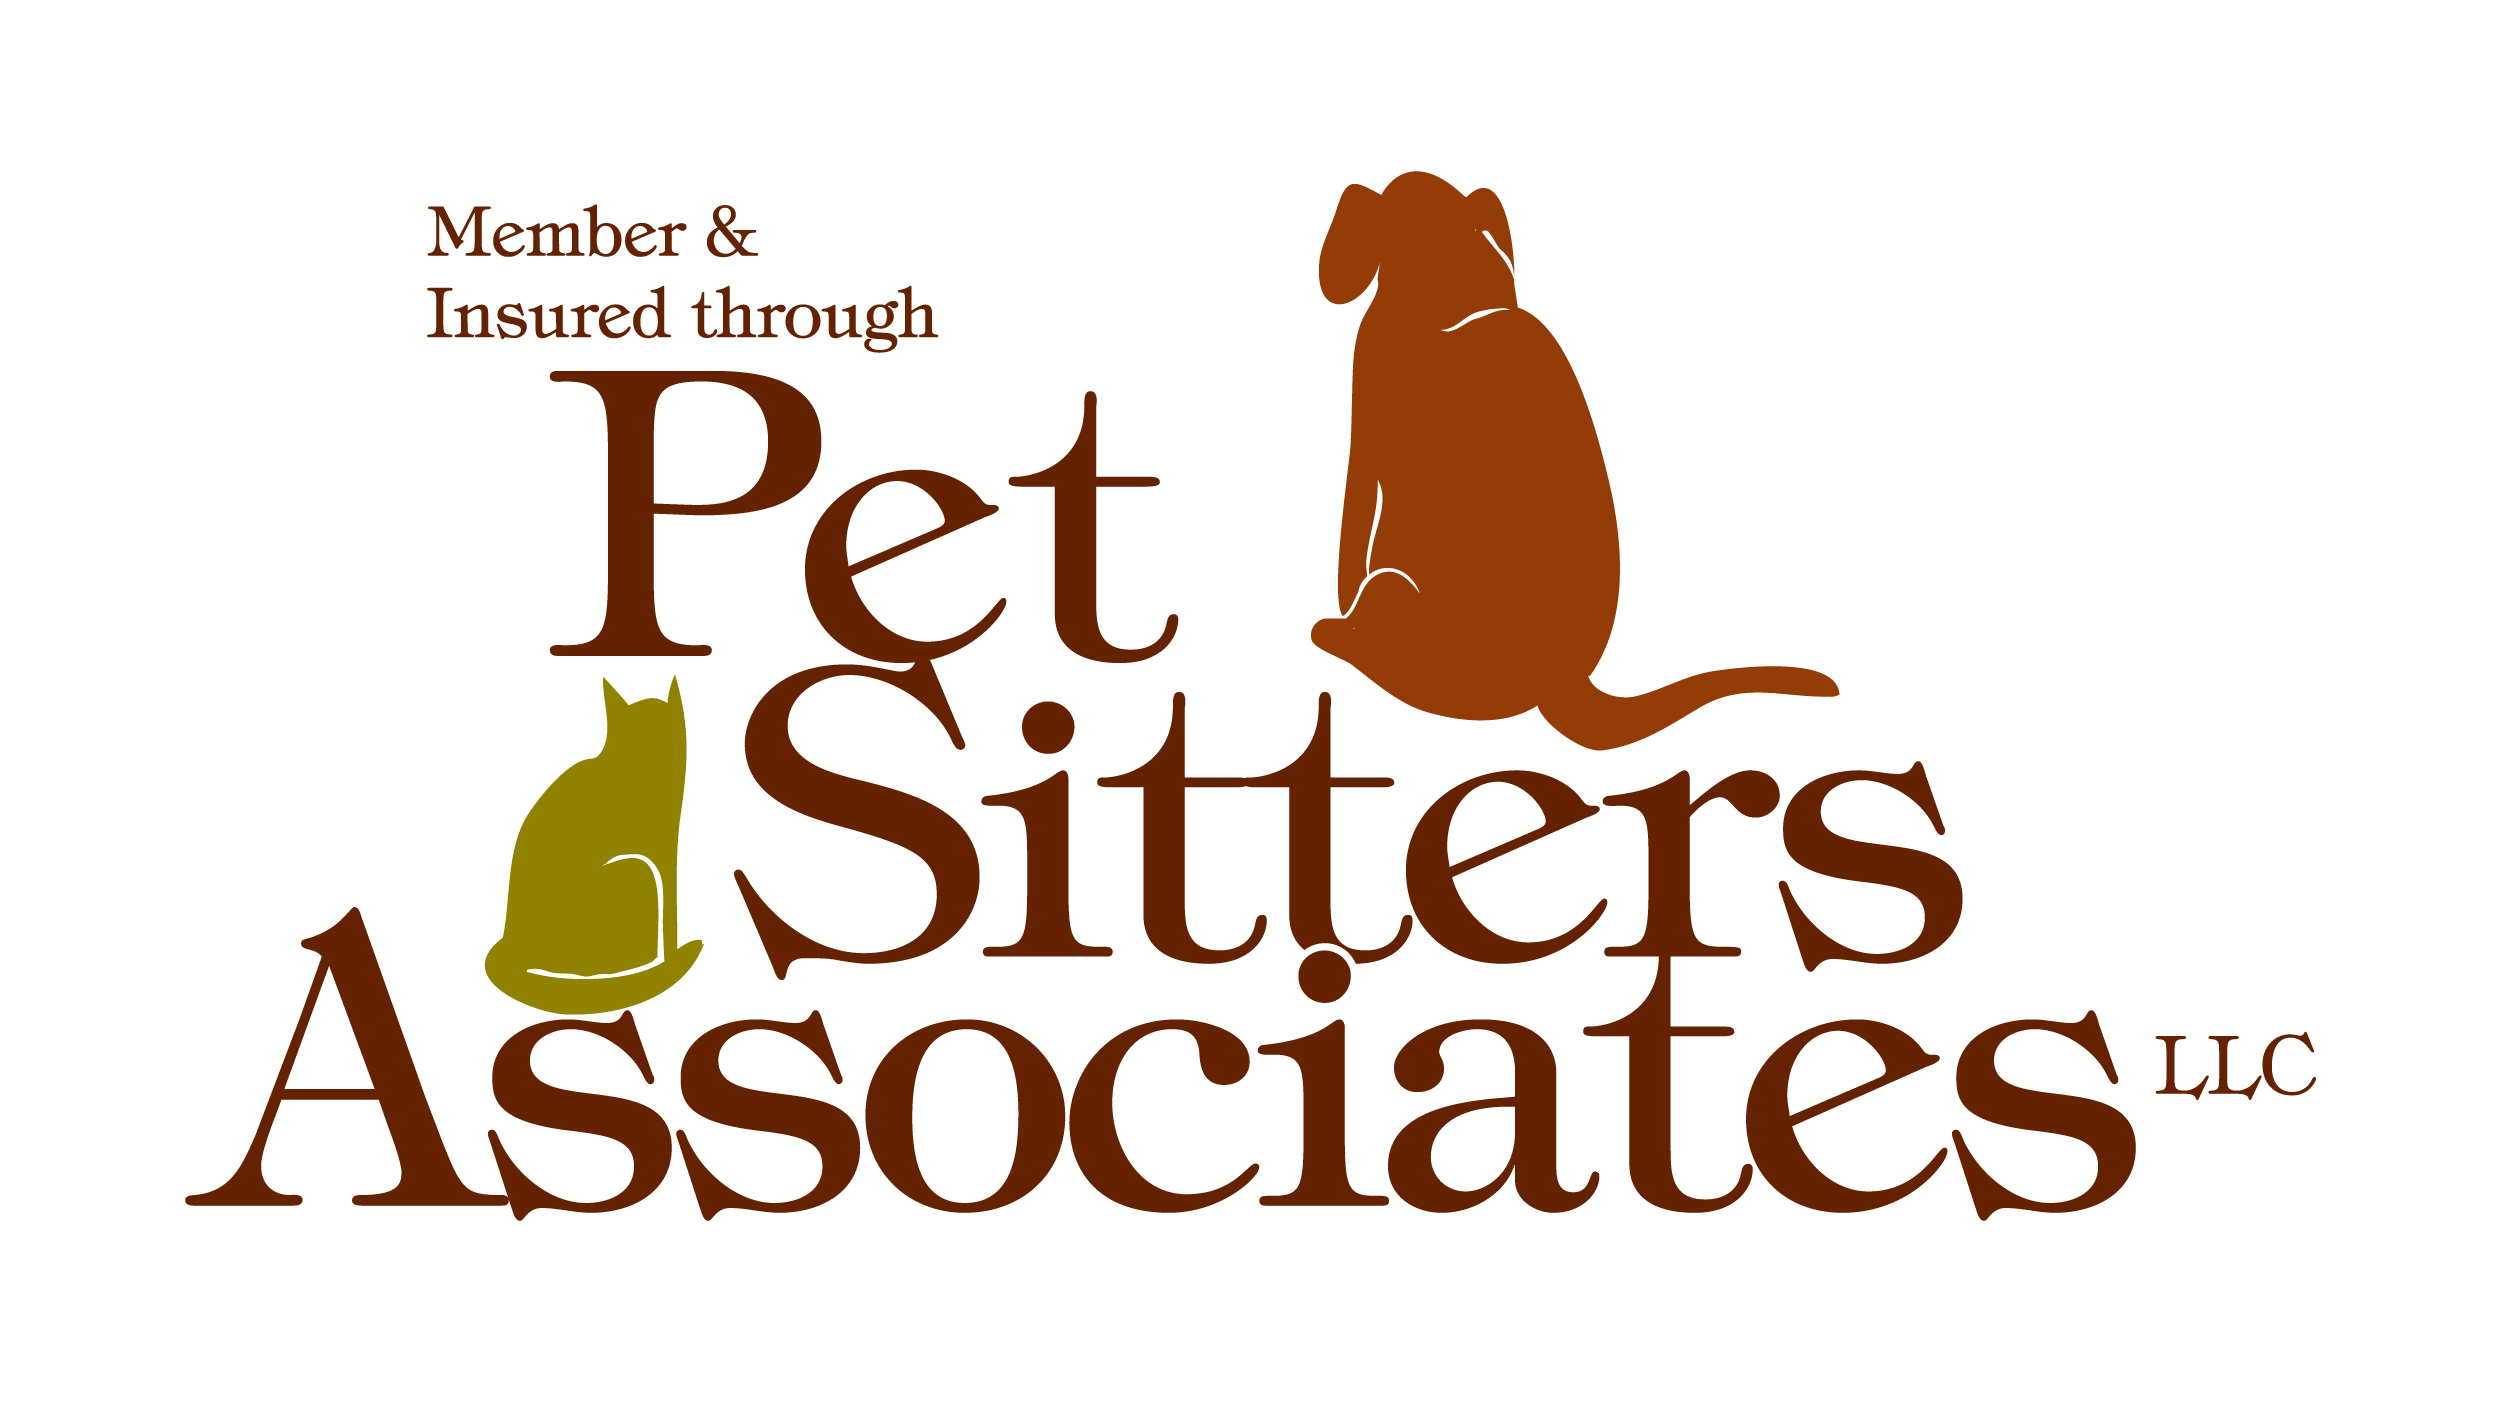 Member and Insured through Pet Sitters Associates LLC